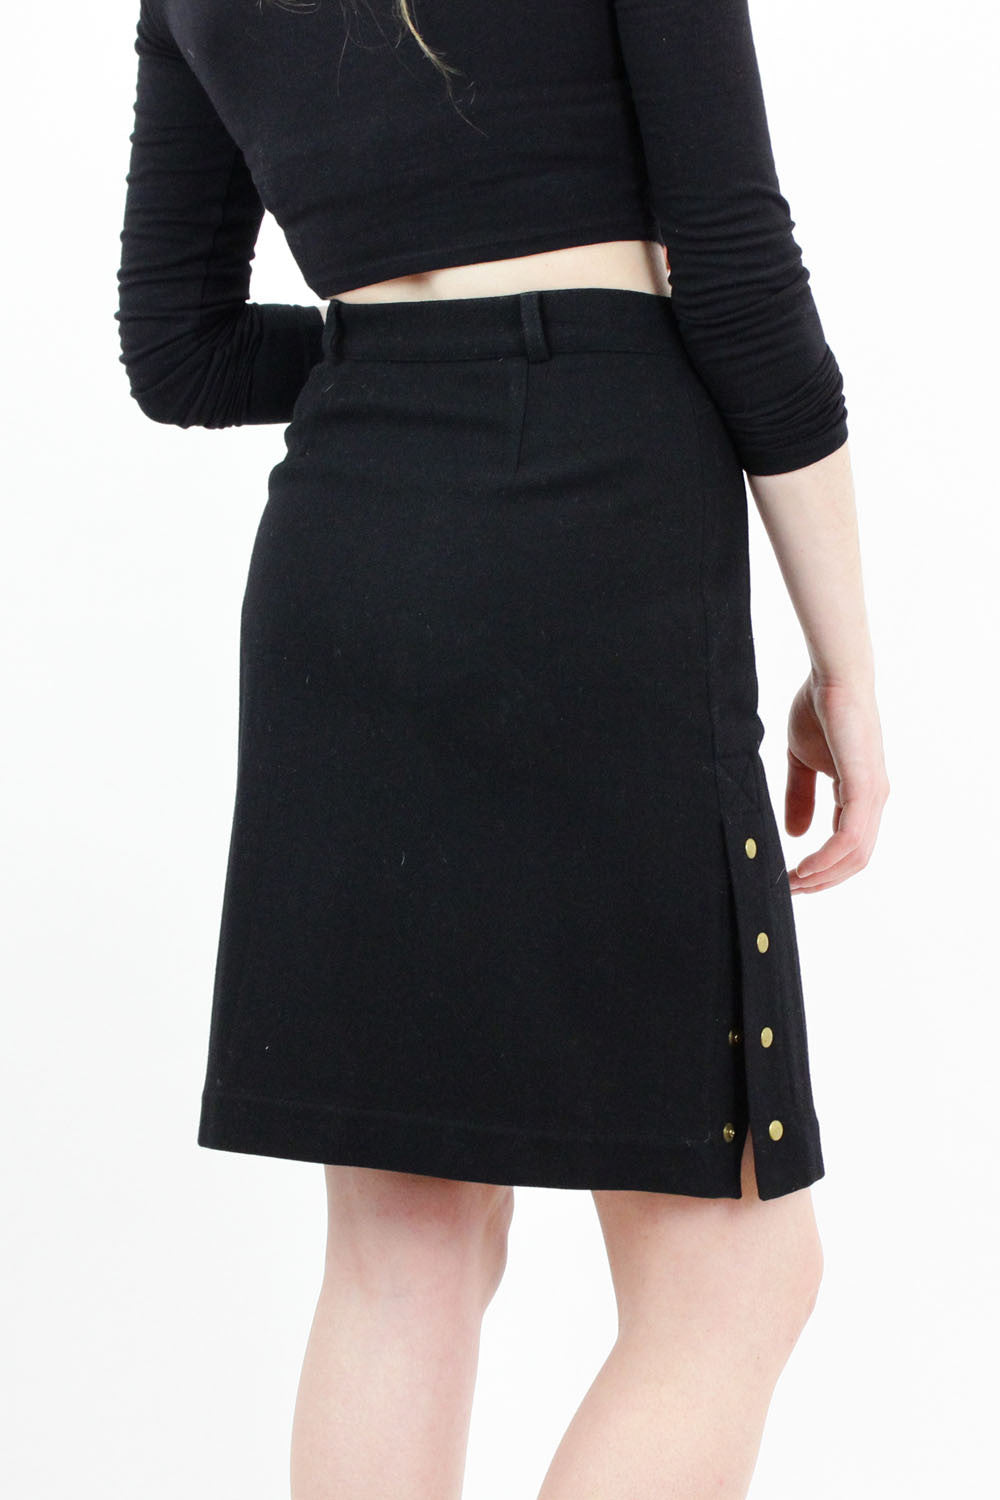 Penny Black High Waist Snap Skirt S